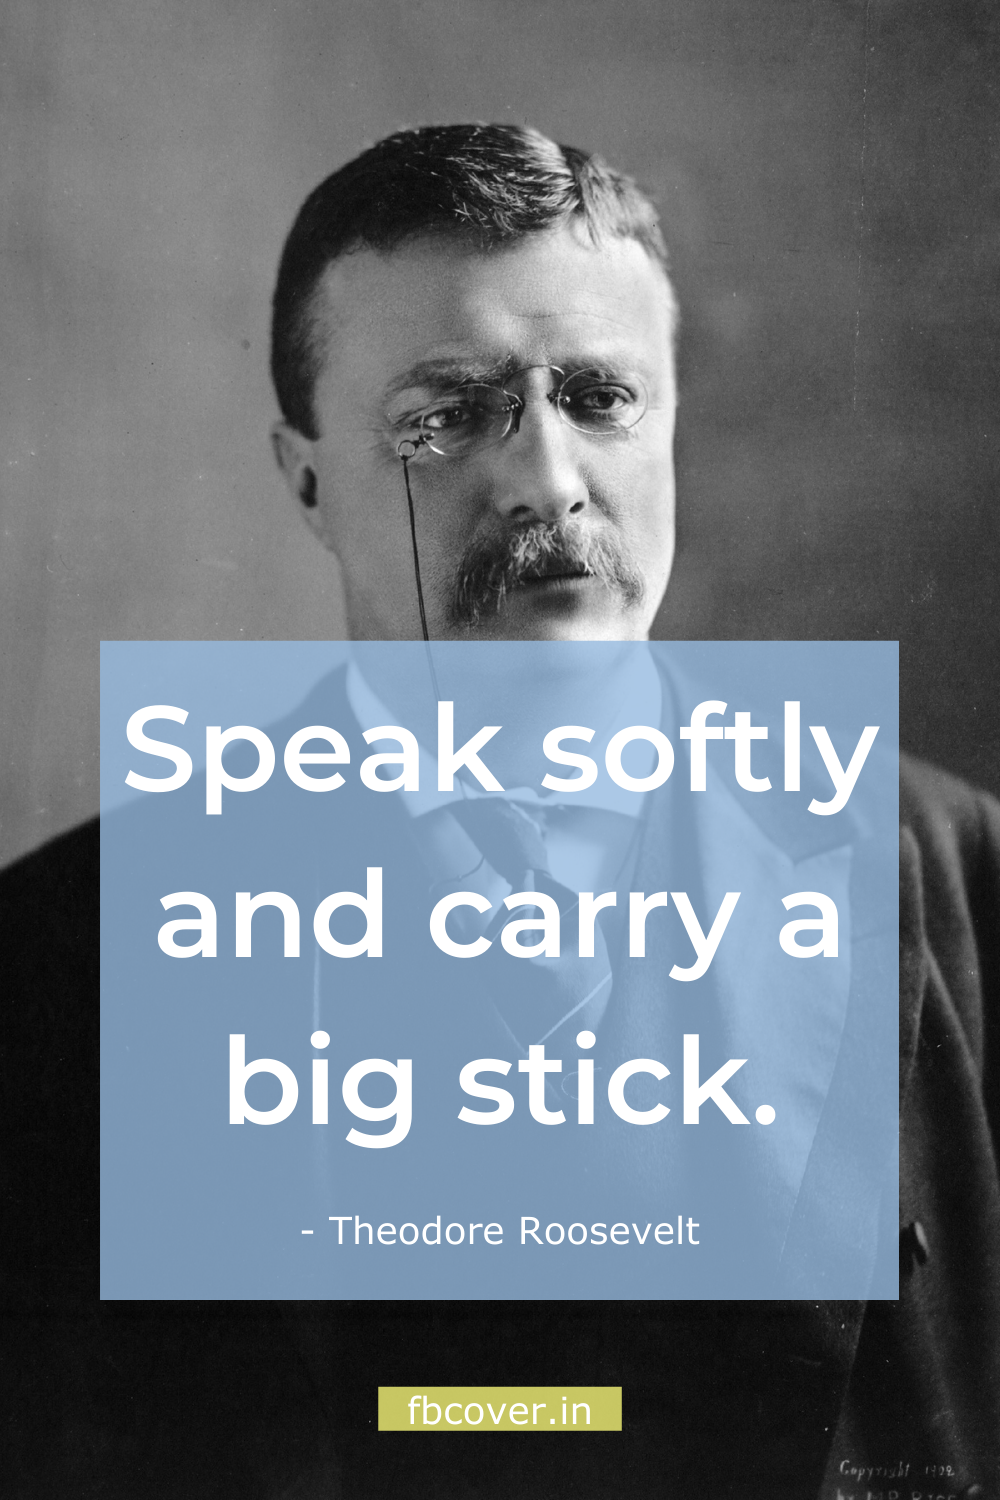 speak softly and carry a big stick quote, theodore roosevelt quotes